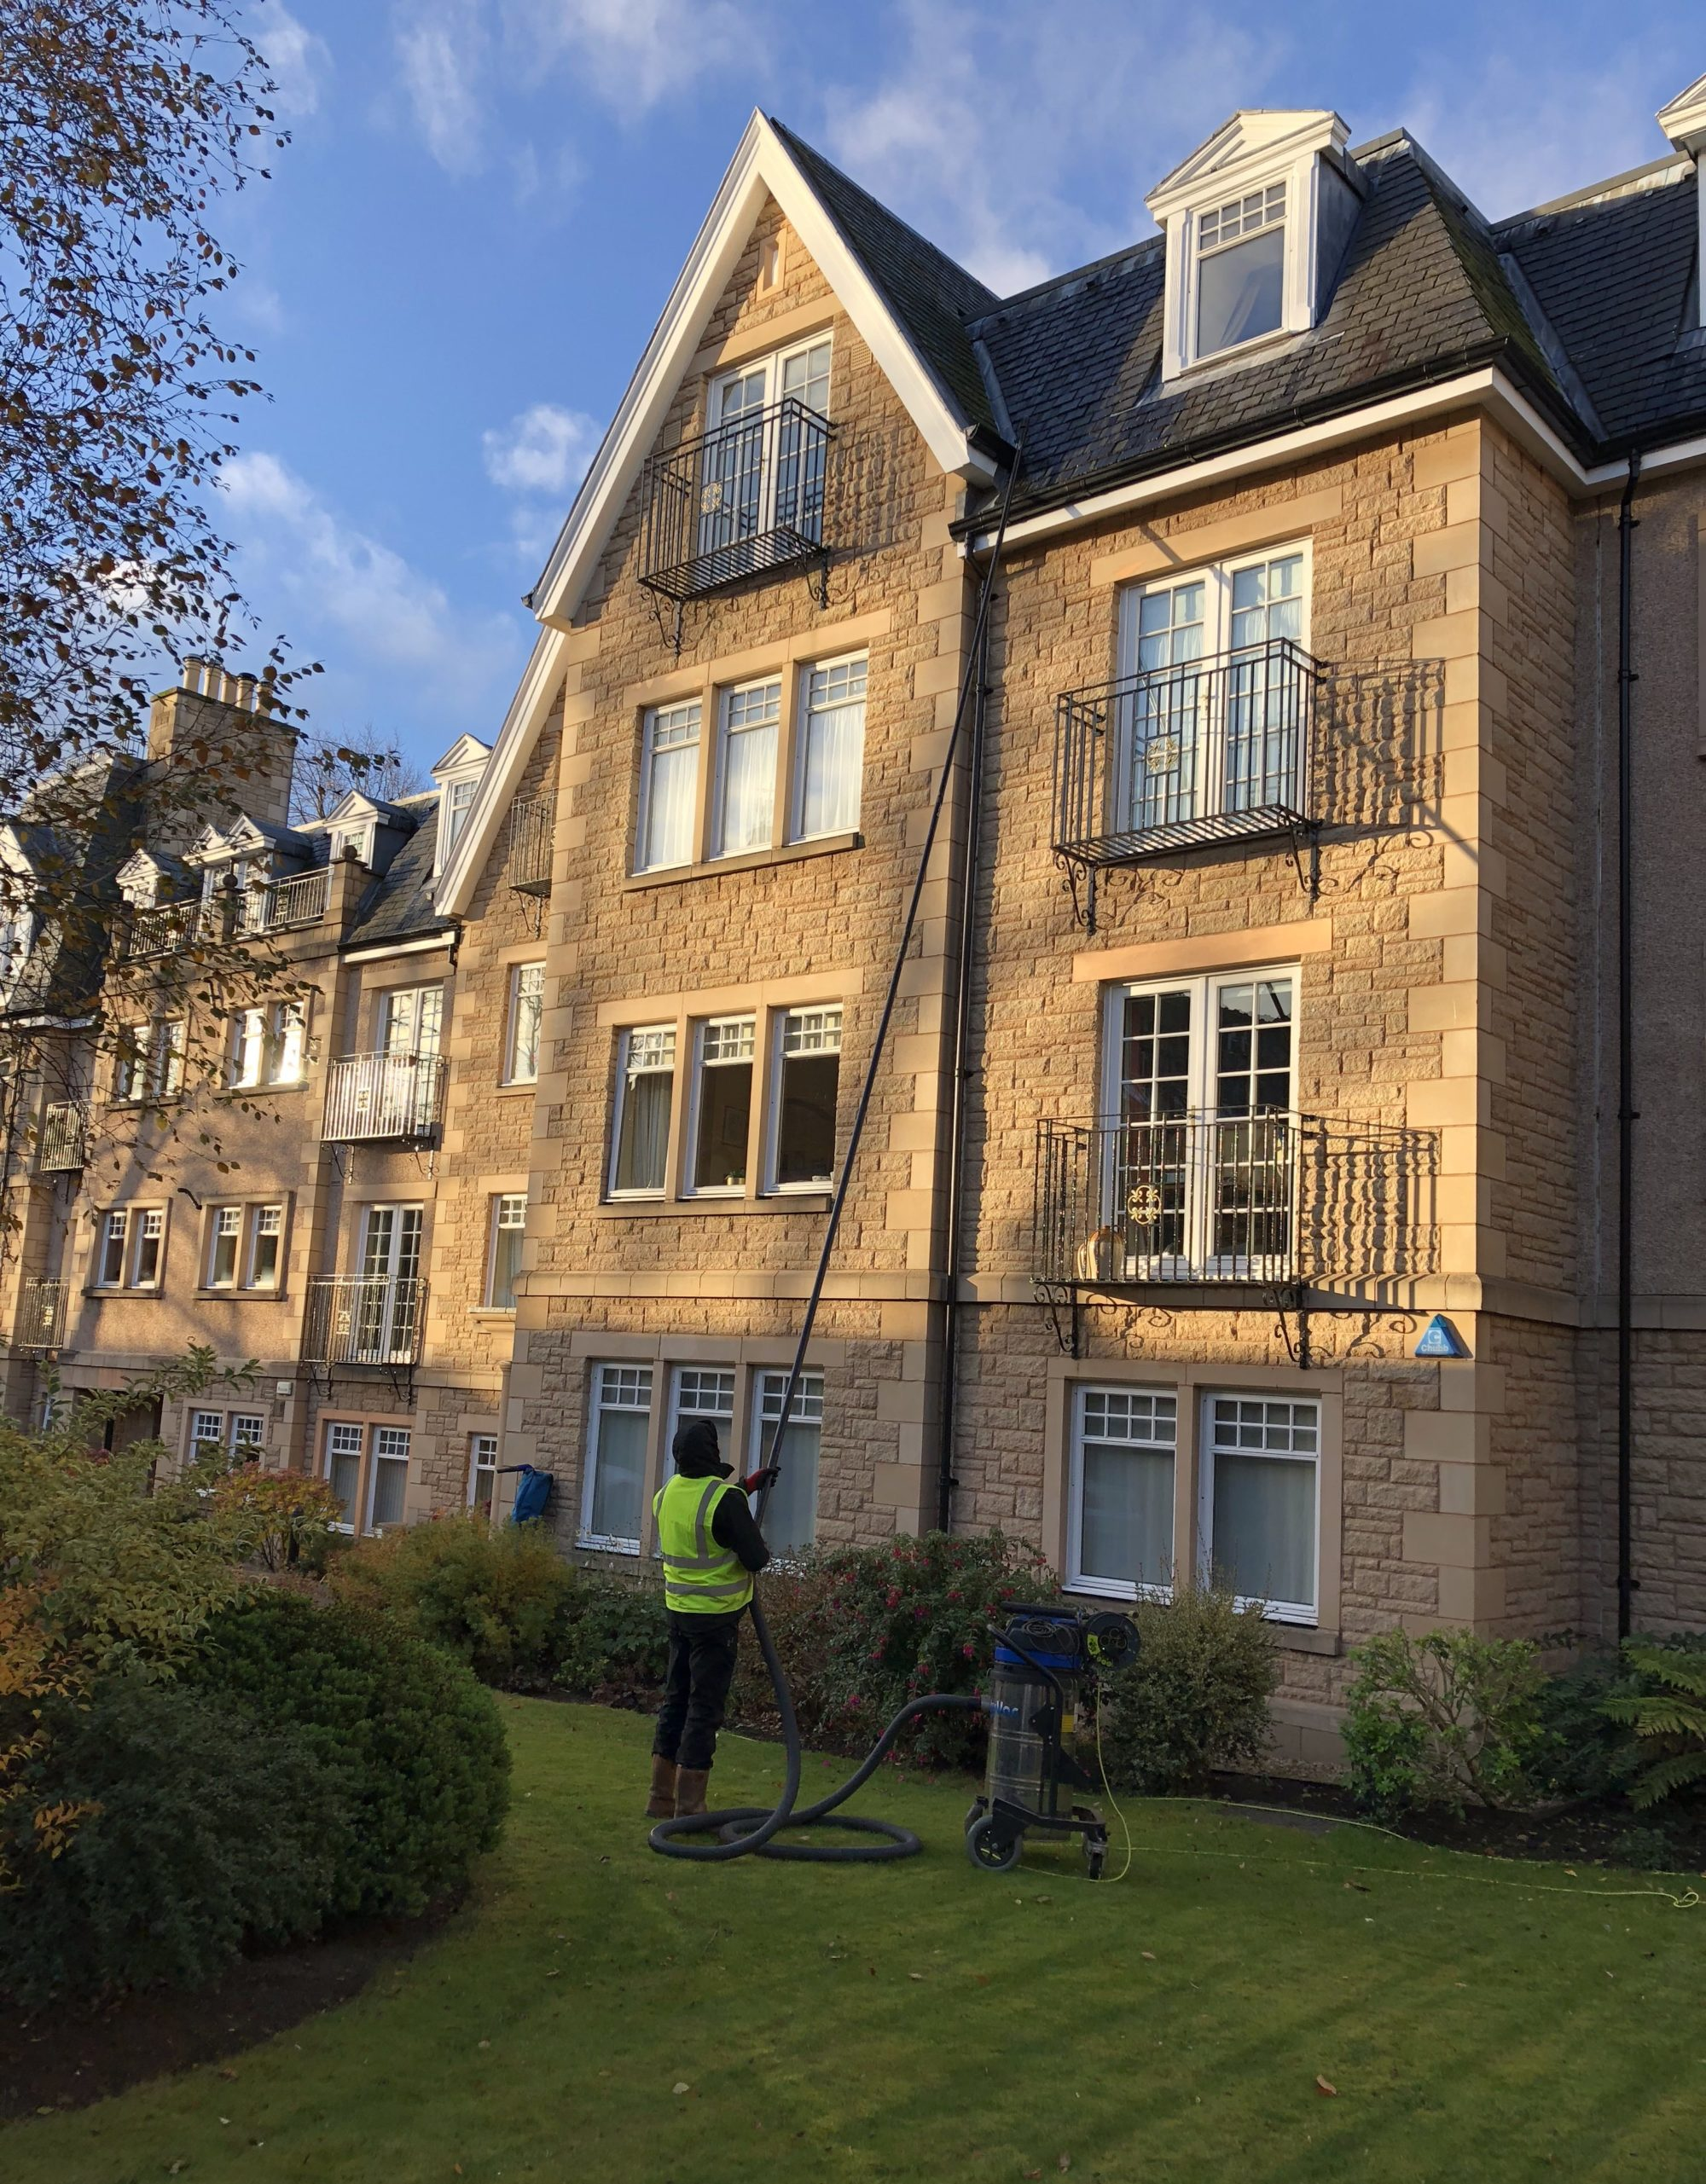 gutter cleaning edinburgh looking for clean gutters and. Black Bedroom Furniture Sets. Home Design Ideas